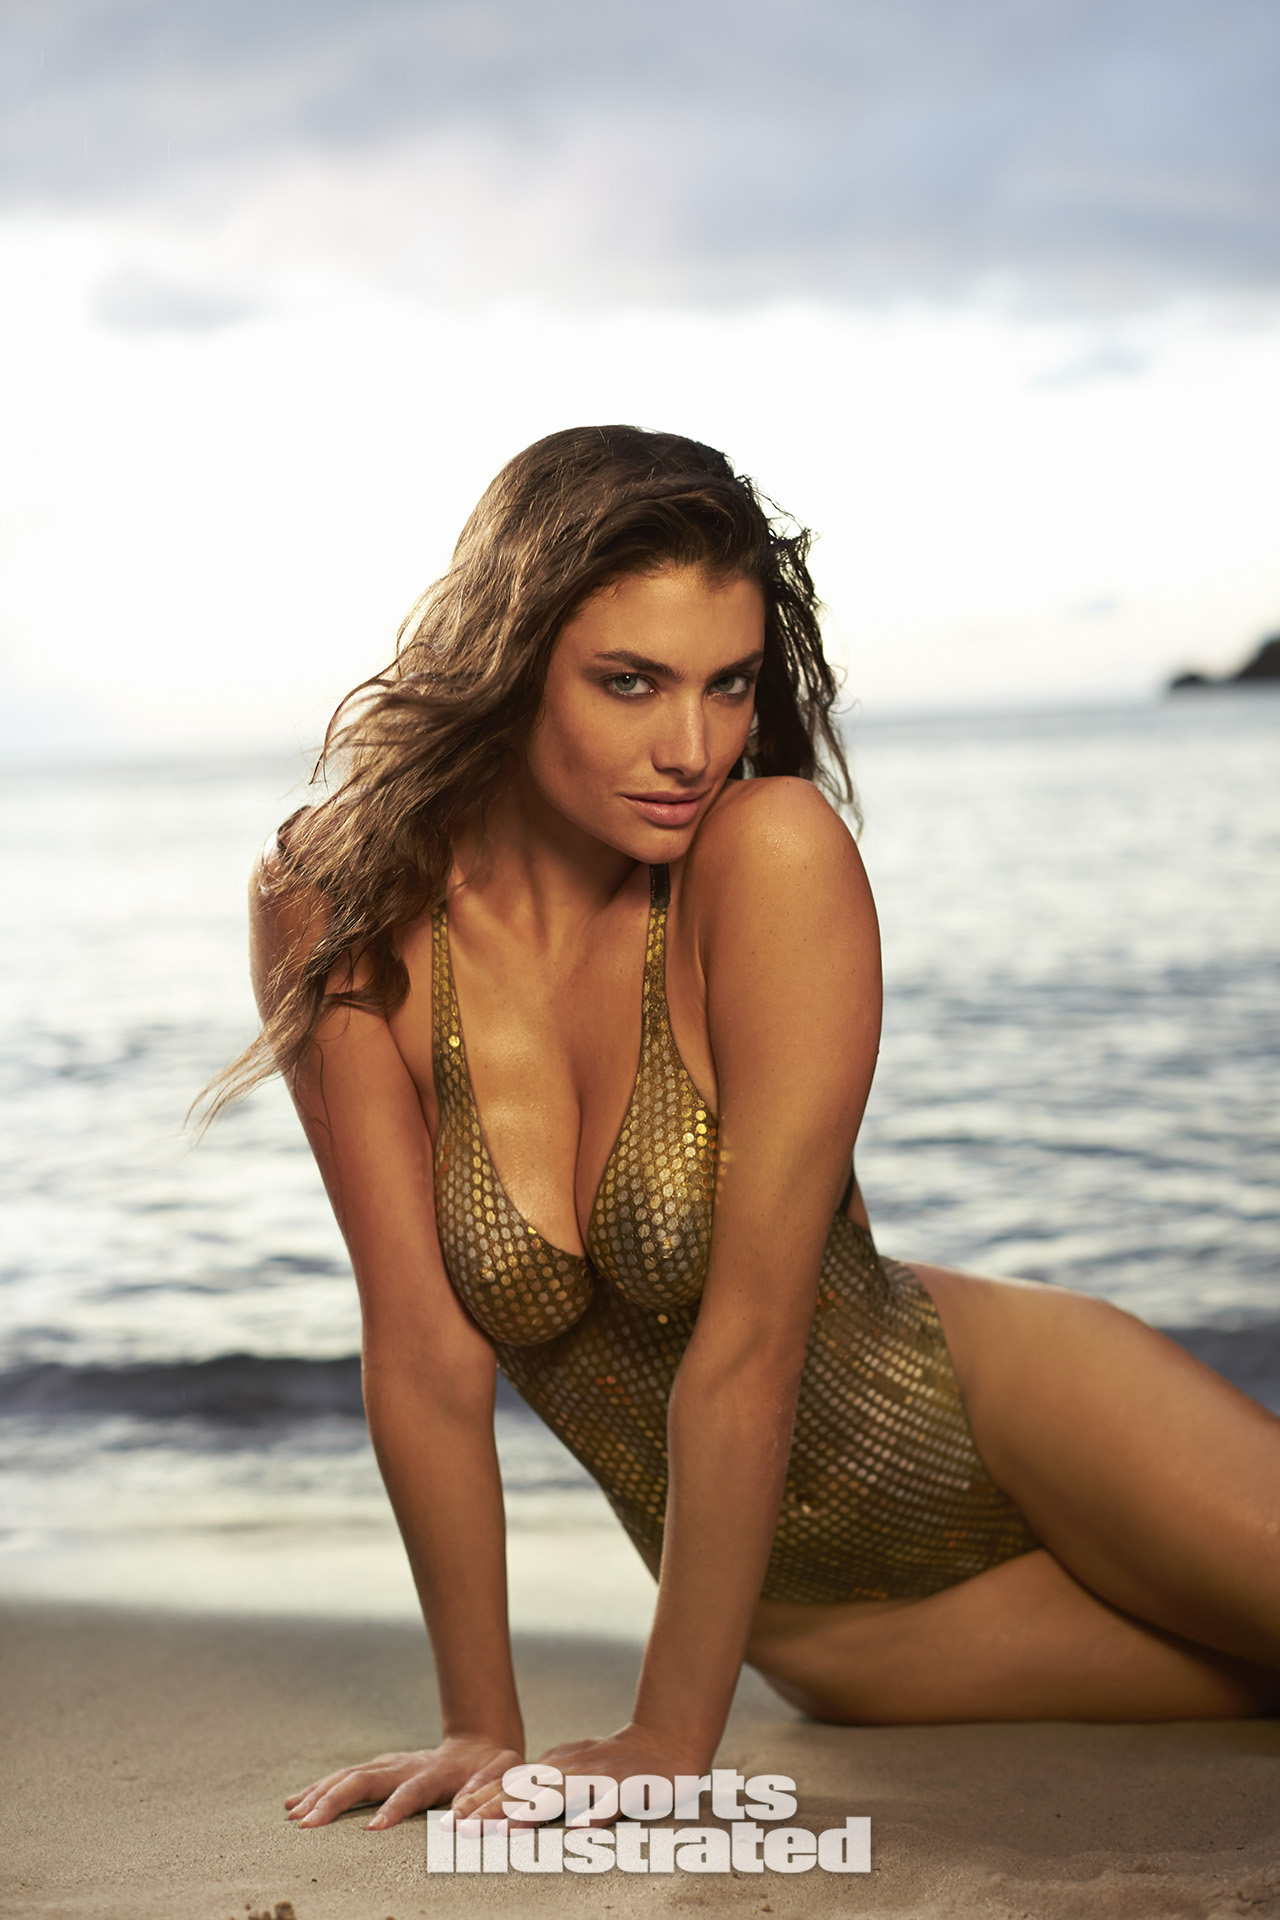 Sports illustrated swimsuit issue features first nude photo series to celebrate metoo